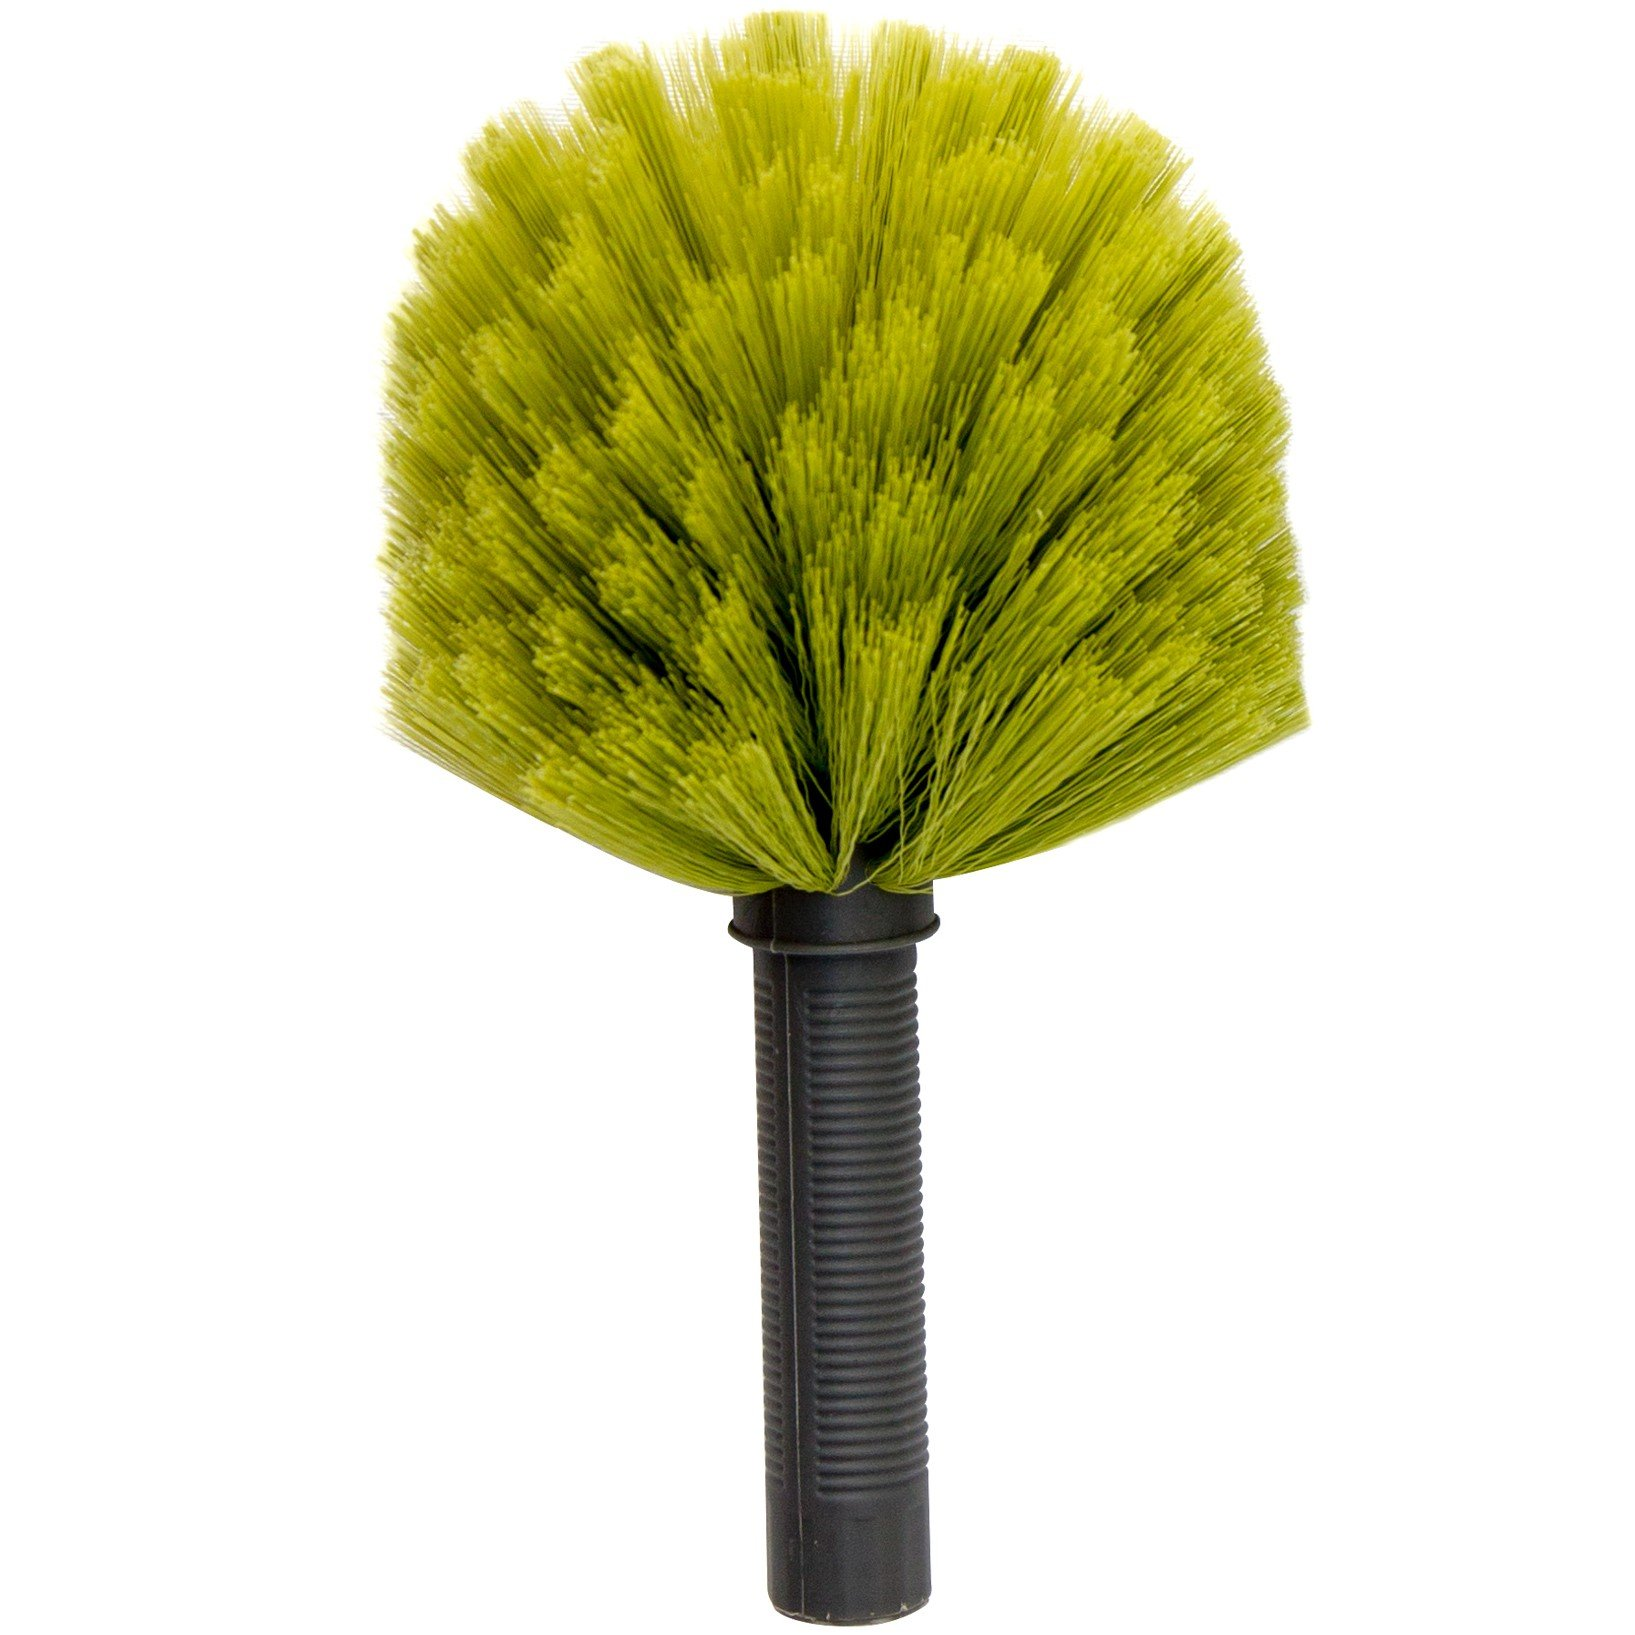 DocaPole Cobweb Duster // Ceiling and Corner Duster // For Dusting and Cleaning High Ceilings and Corners // Includes Handle for Use without Pole // DocaPole Cleaning Attachment (Pole Not Included)